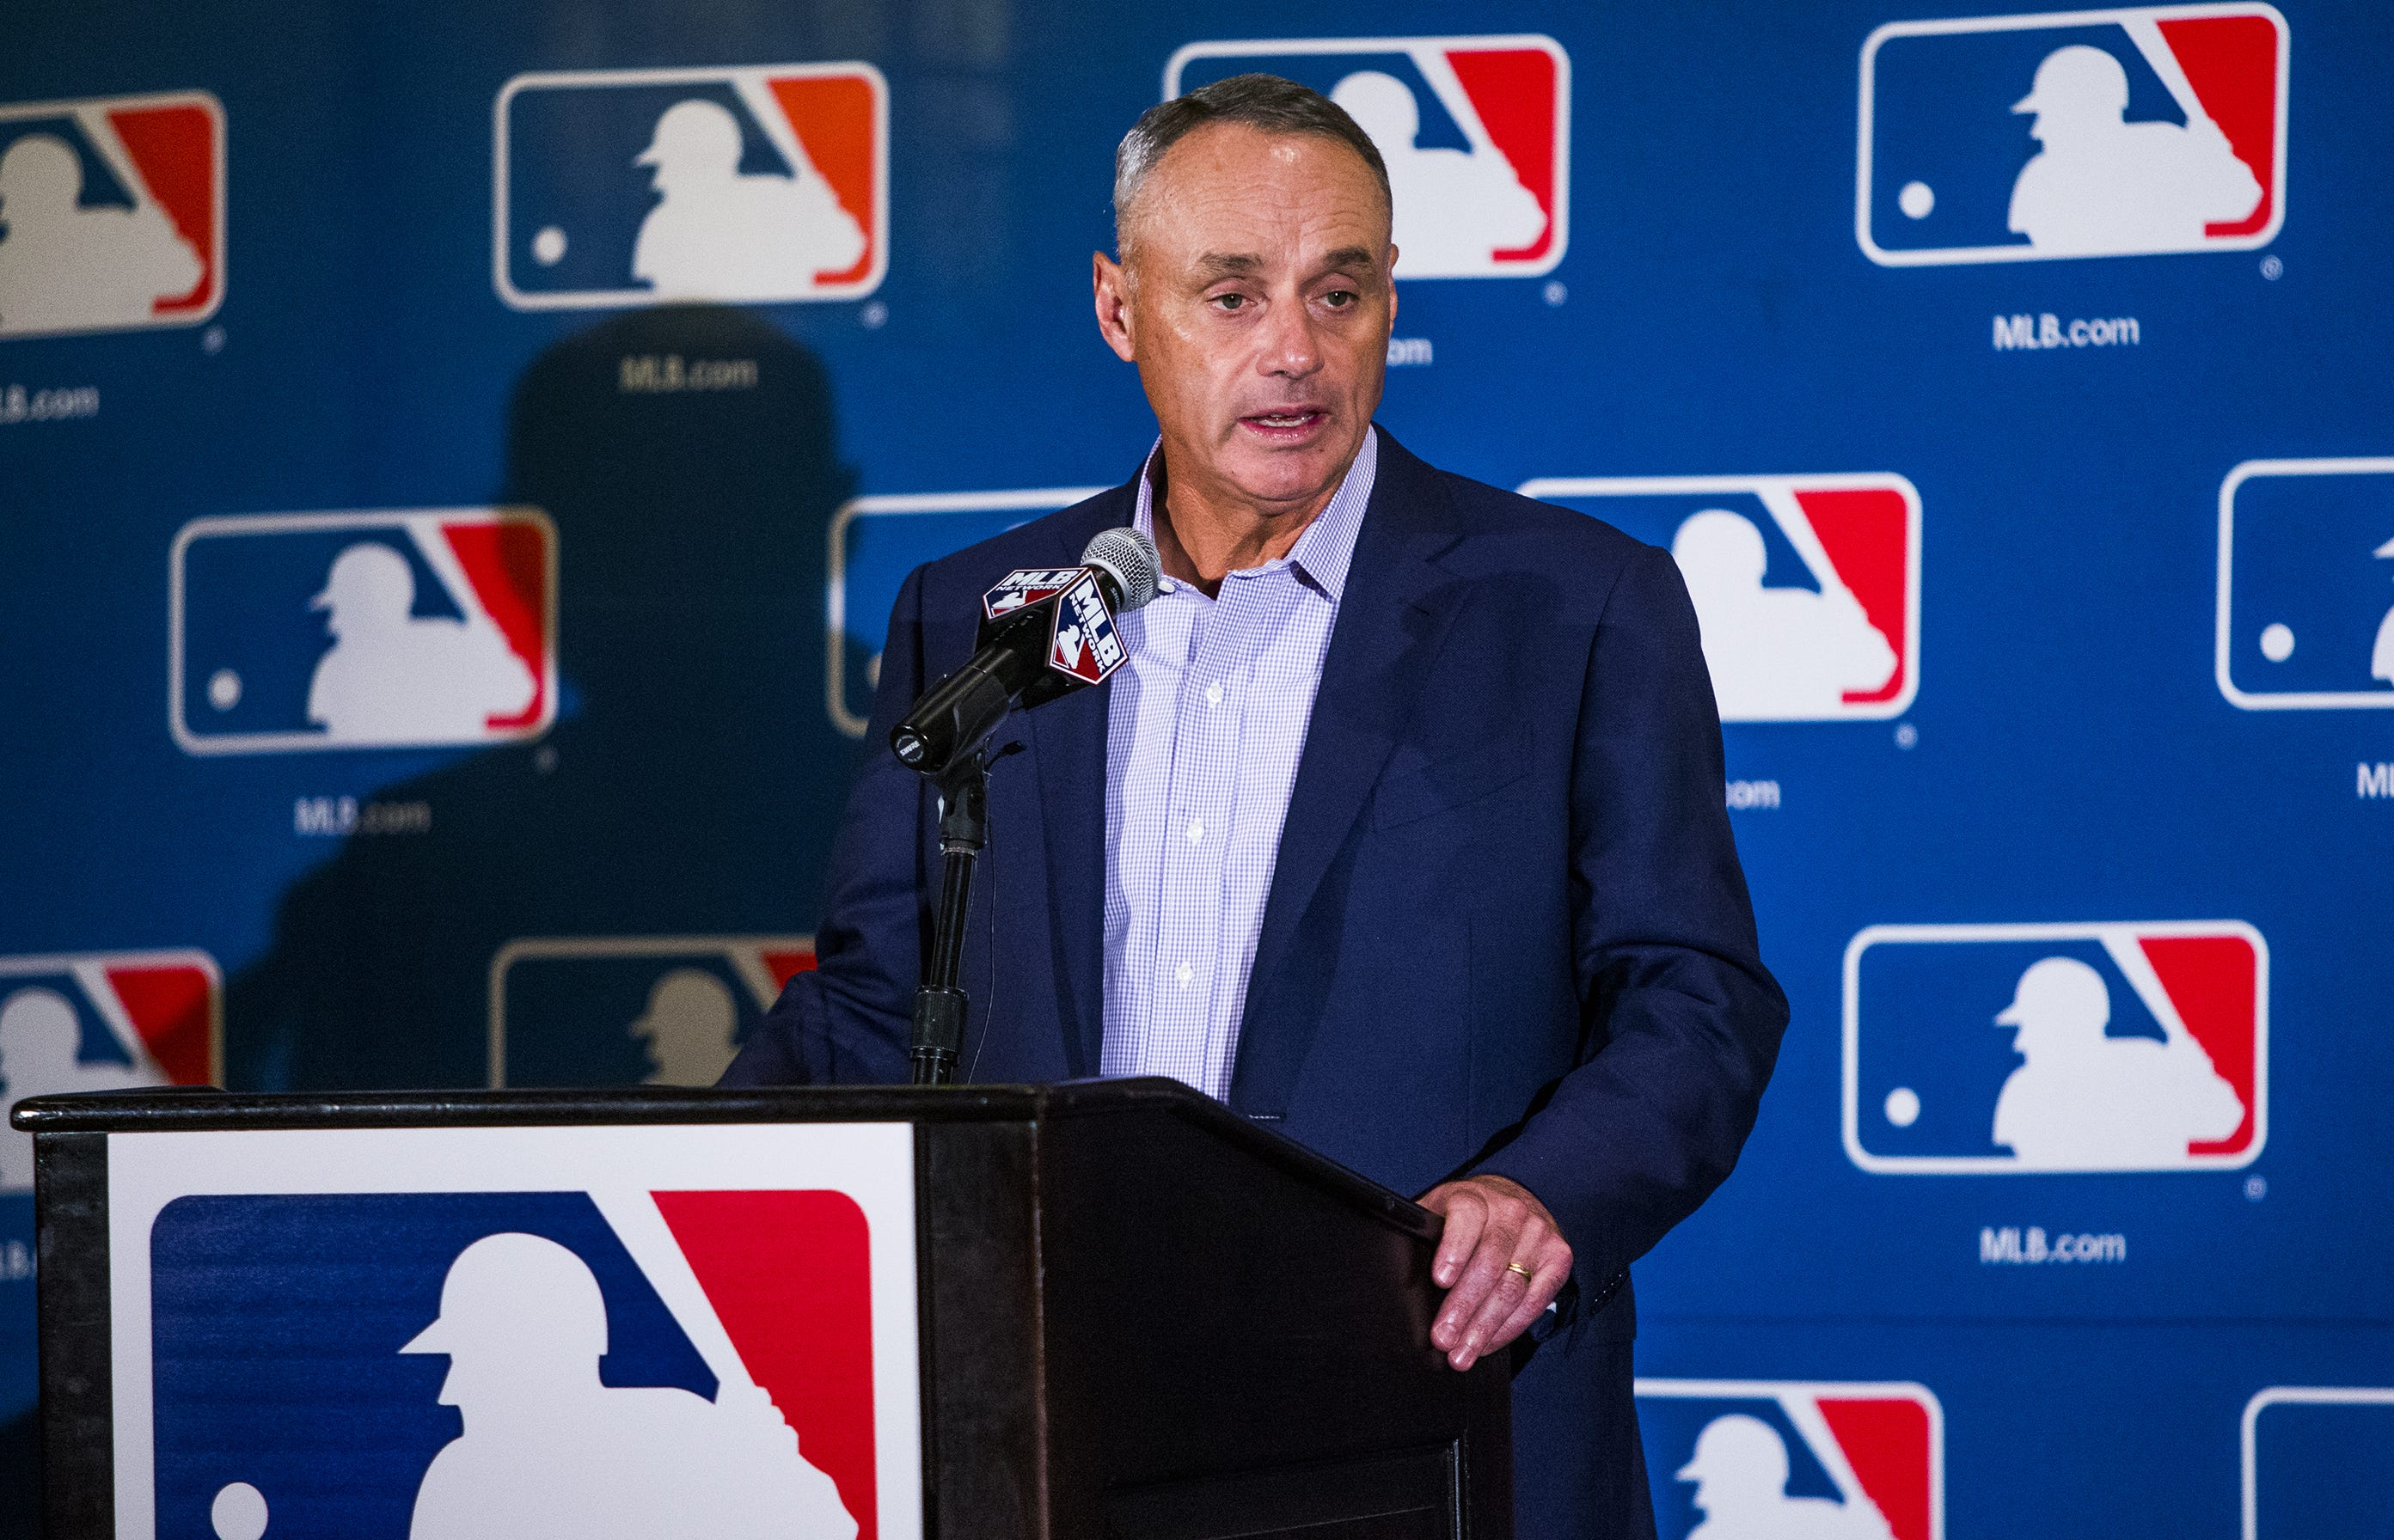 MLB commissioner: Chase Field needs upgrades or Diamondbacks will 'look for an alternative'